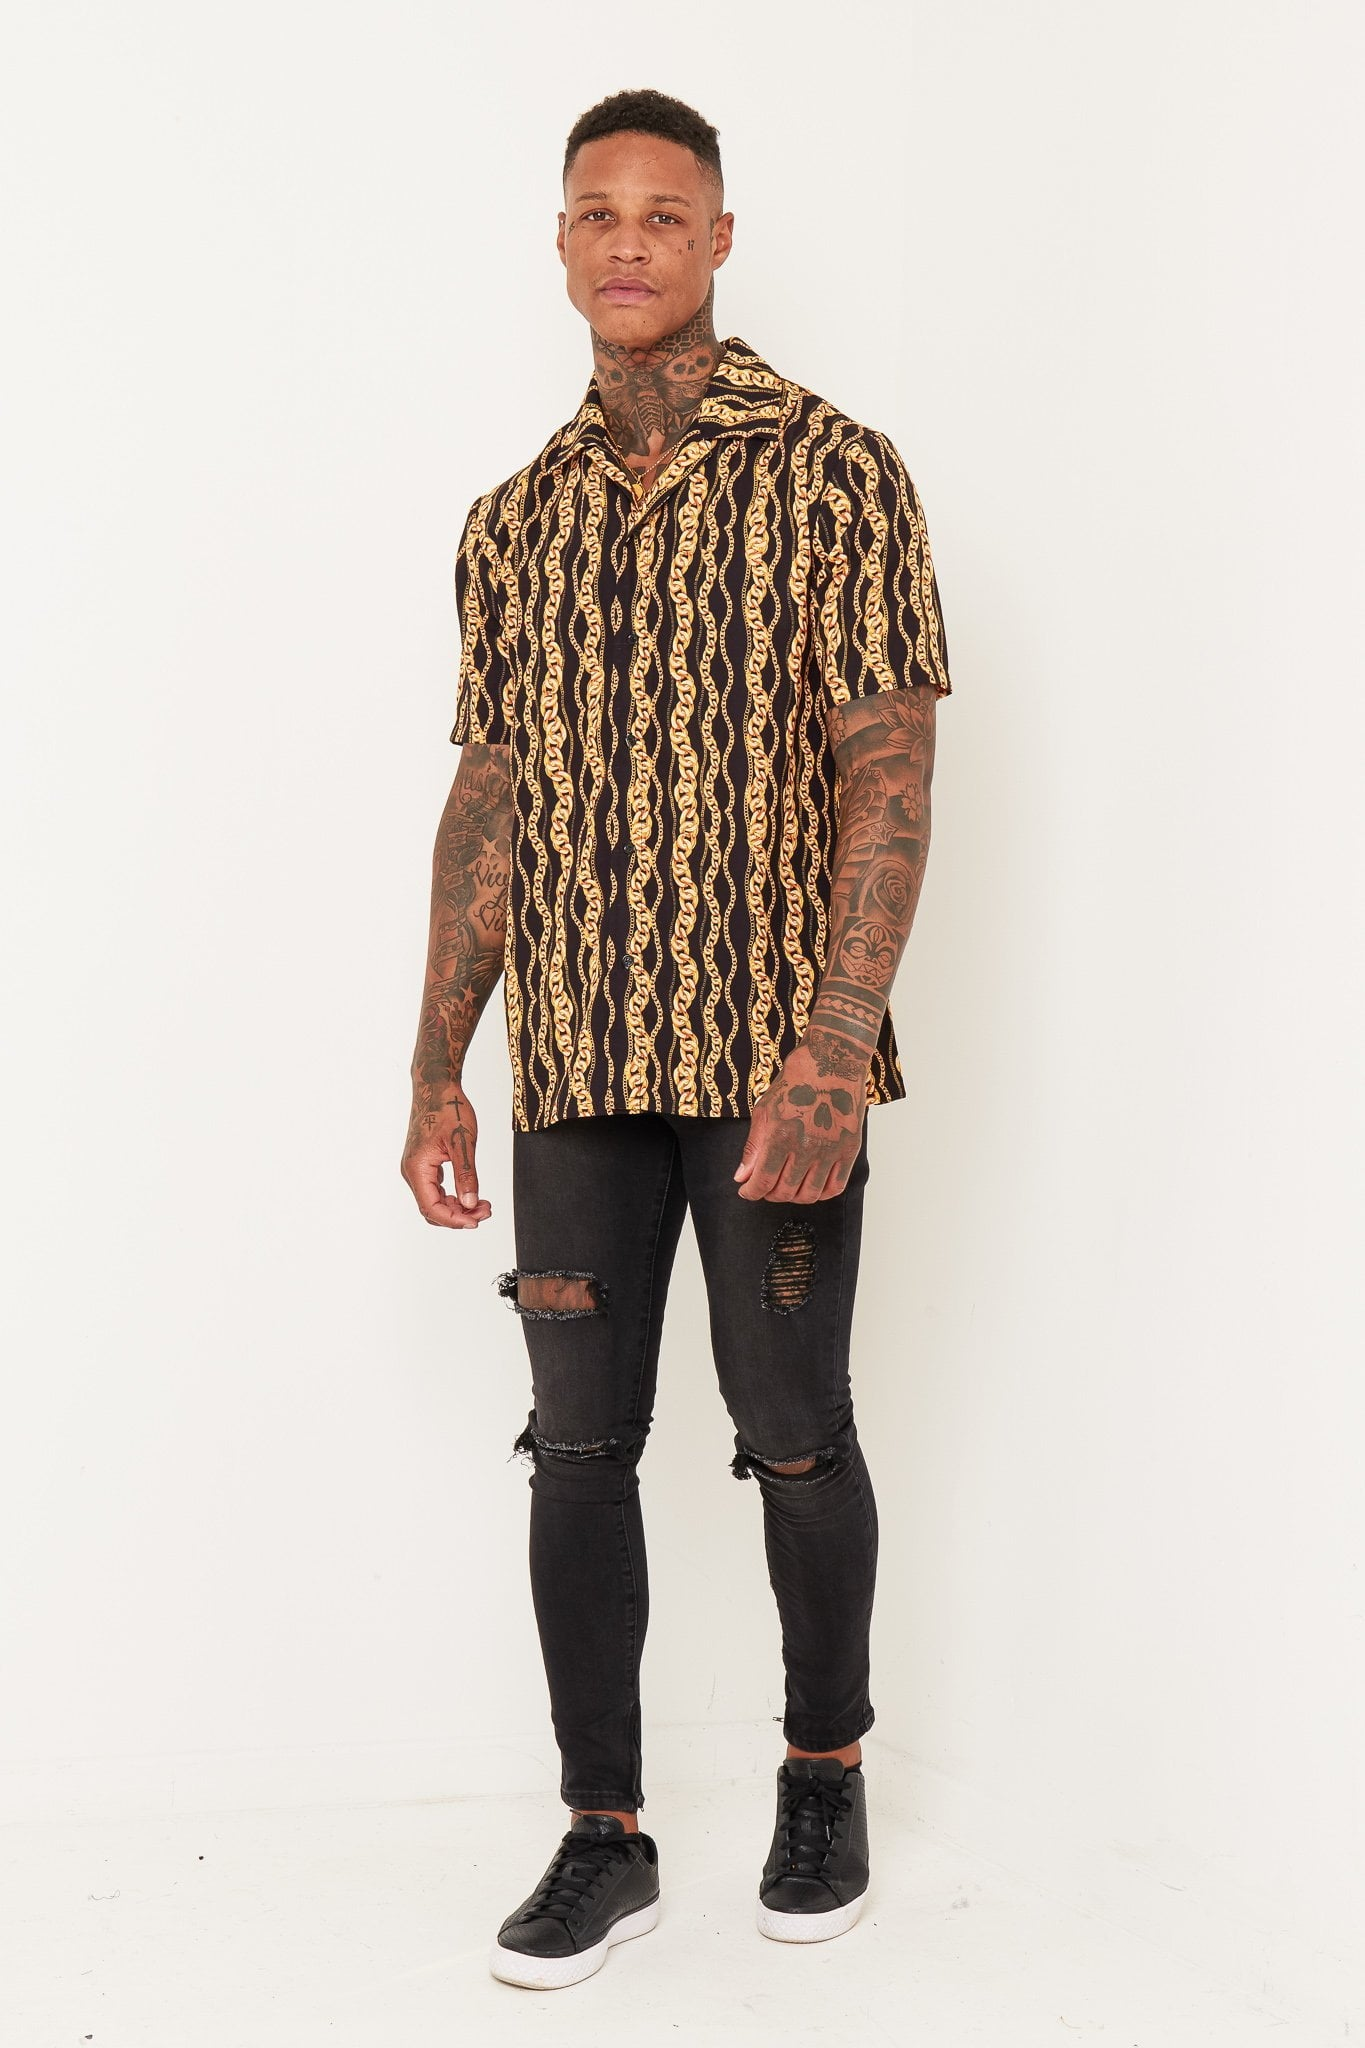 REVERE SHIRT REPEATED GOLD CHAIN OVERSIZED RELAXED SHIRT